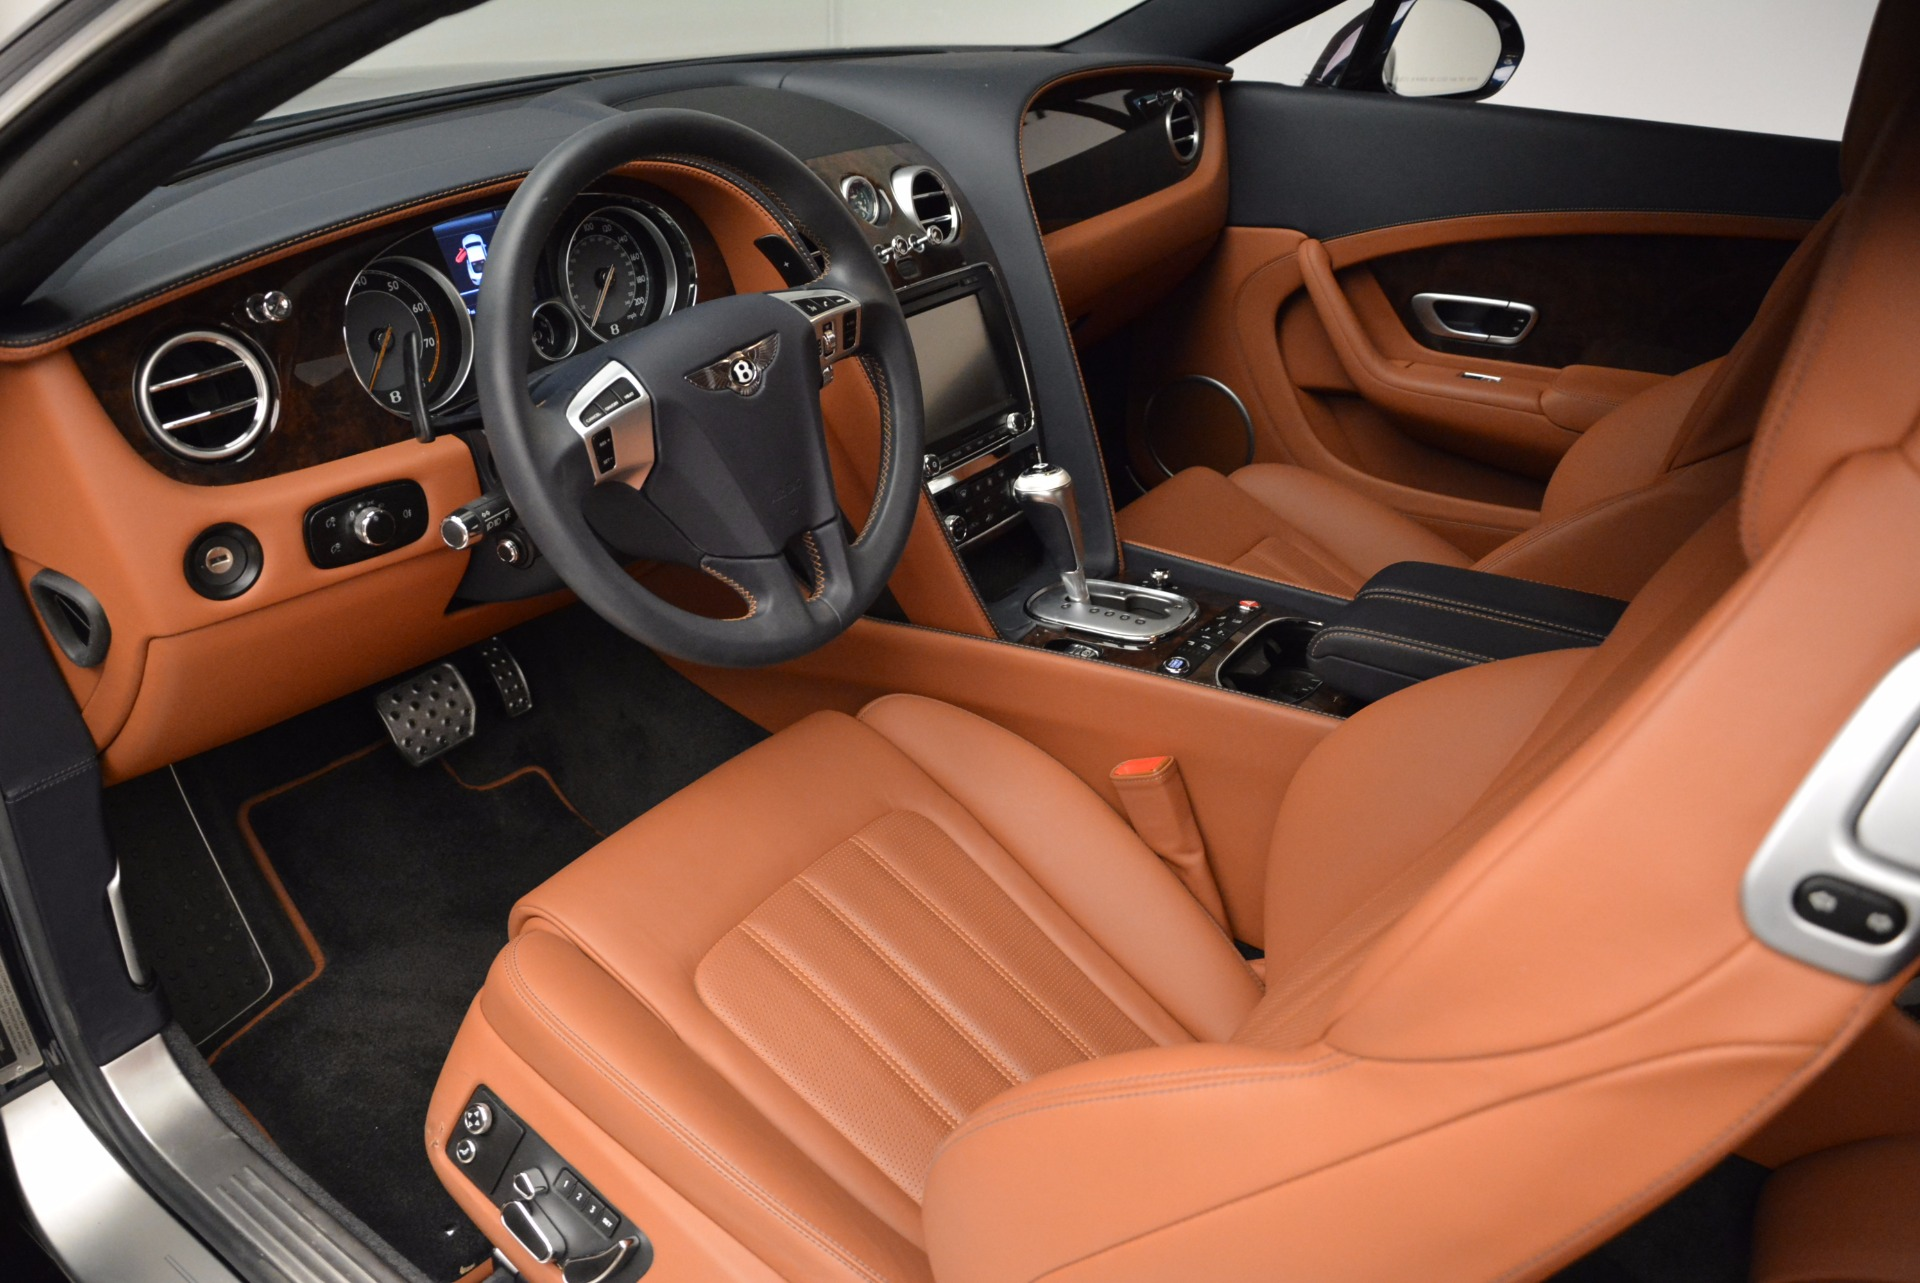 Used 2014 Bentley Continental GT W12 For Sale In Westport, CT 1845_p22